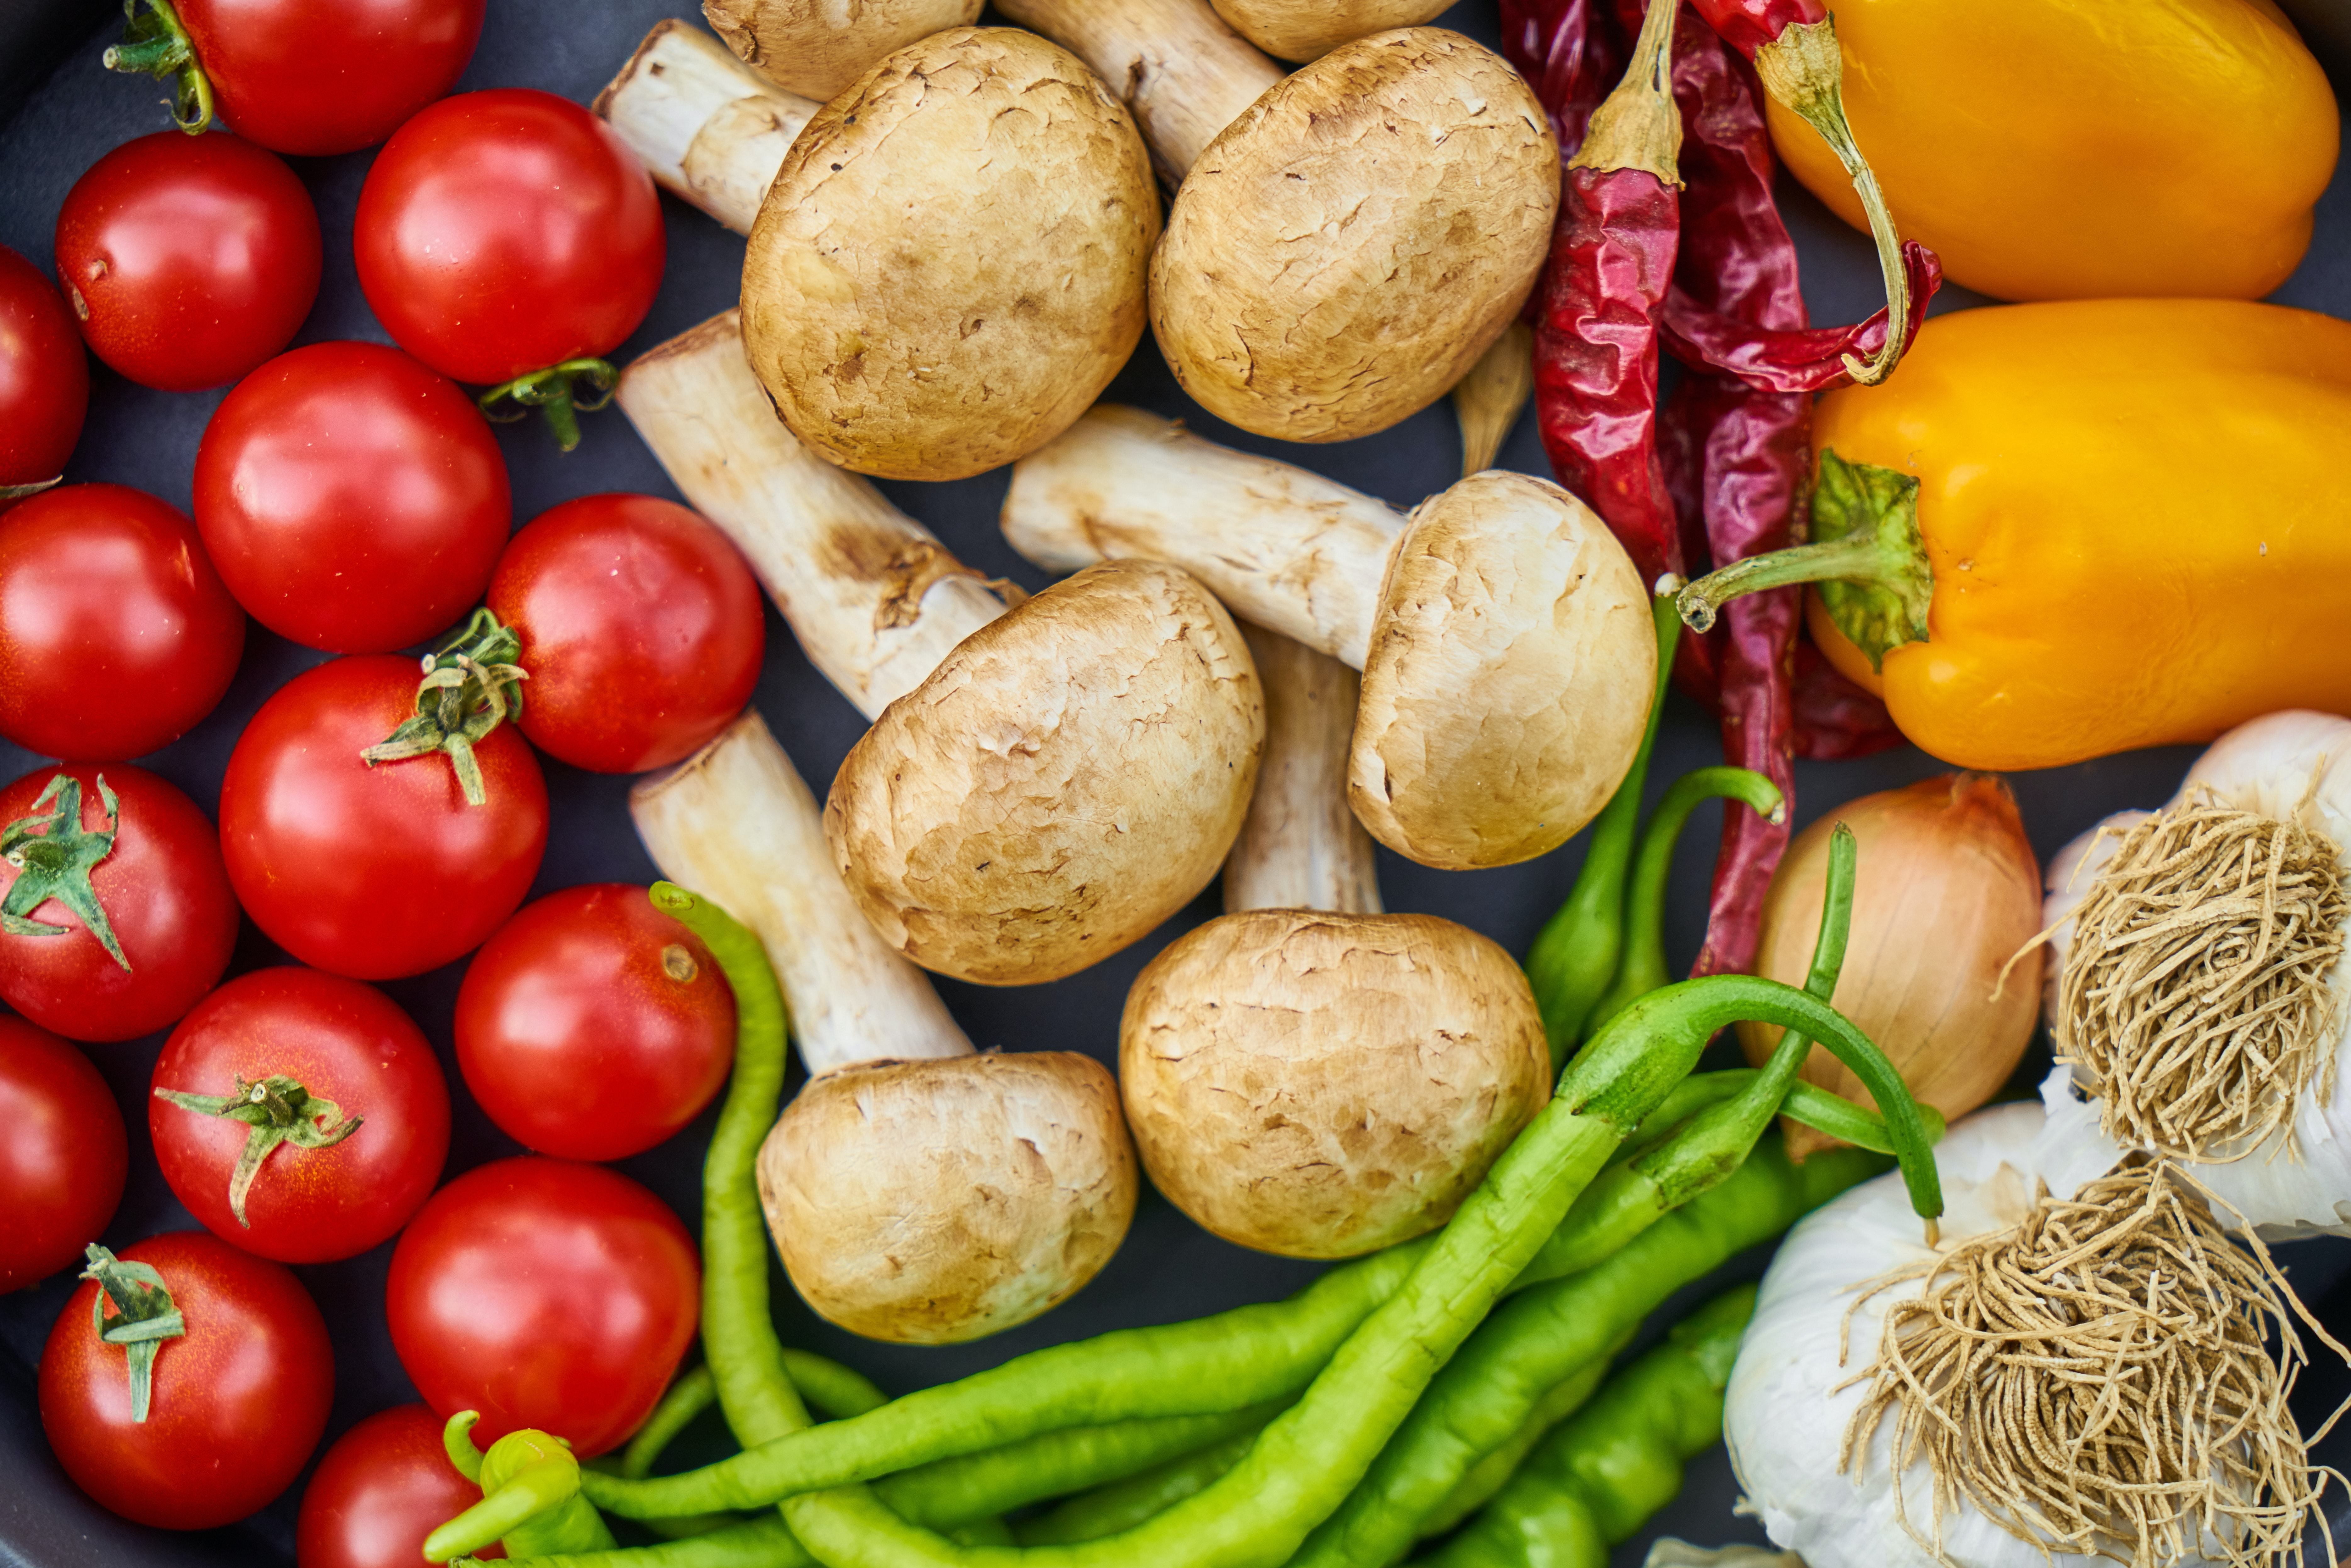 flat-lay-photography-of-variety-of-vegetables-1435904 (1)